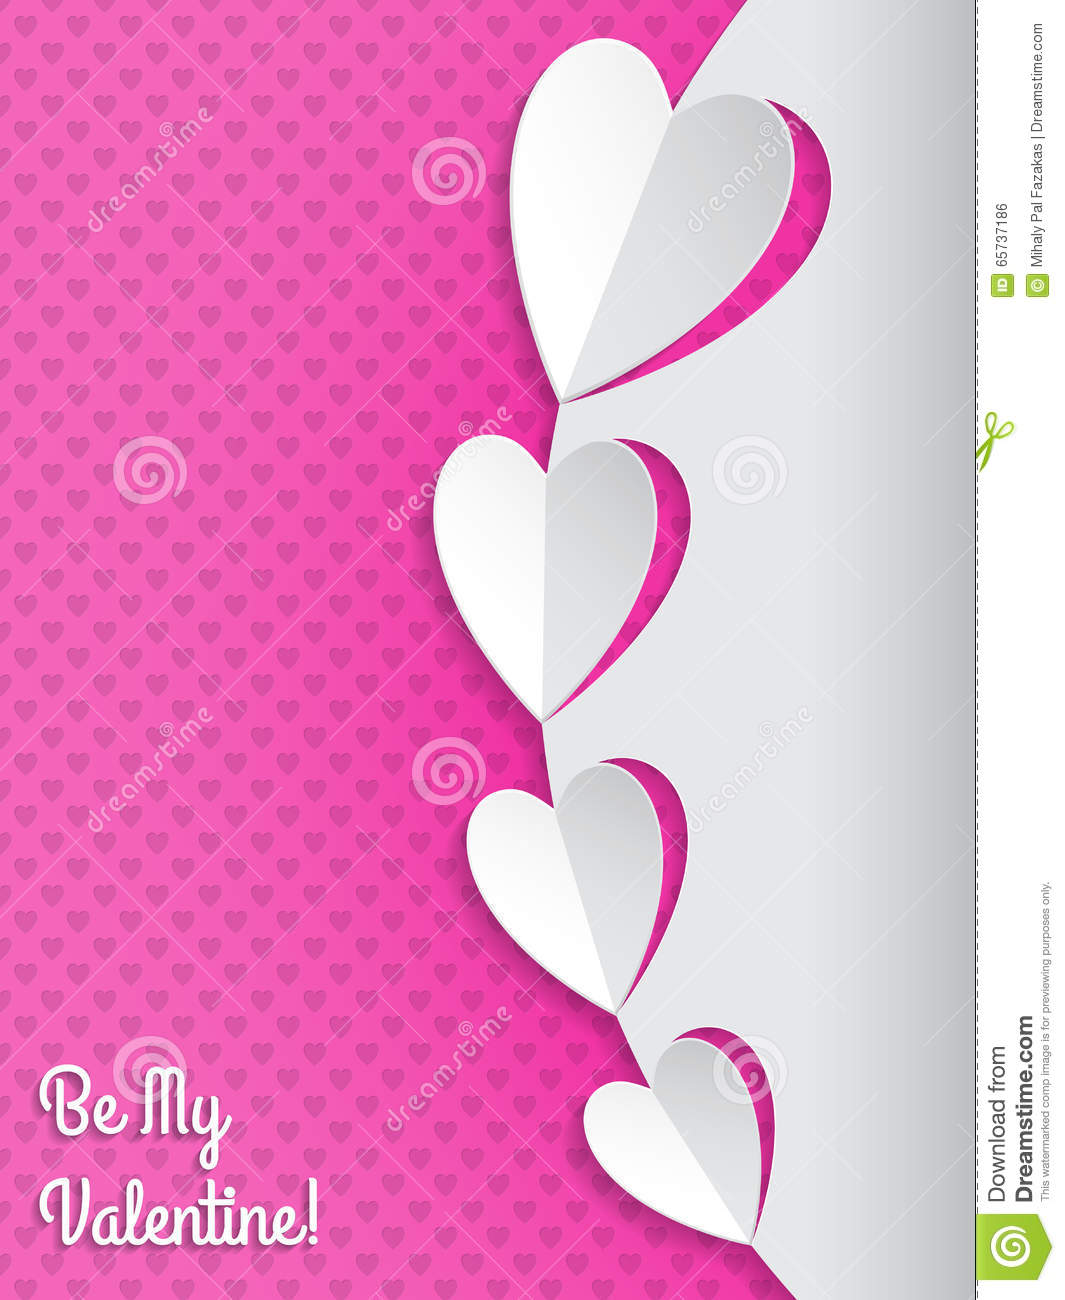 Cool valentine greeting card with hearts stock vector illustration cool valentine greeting card with hearts m4hsunfo